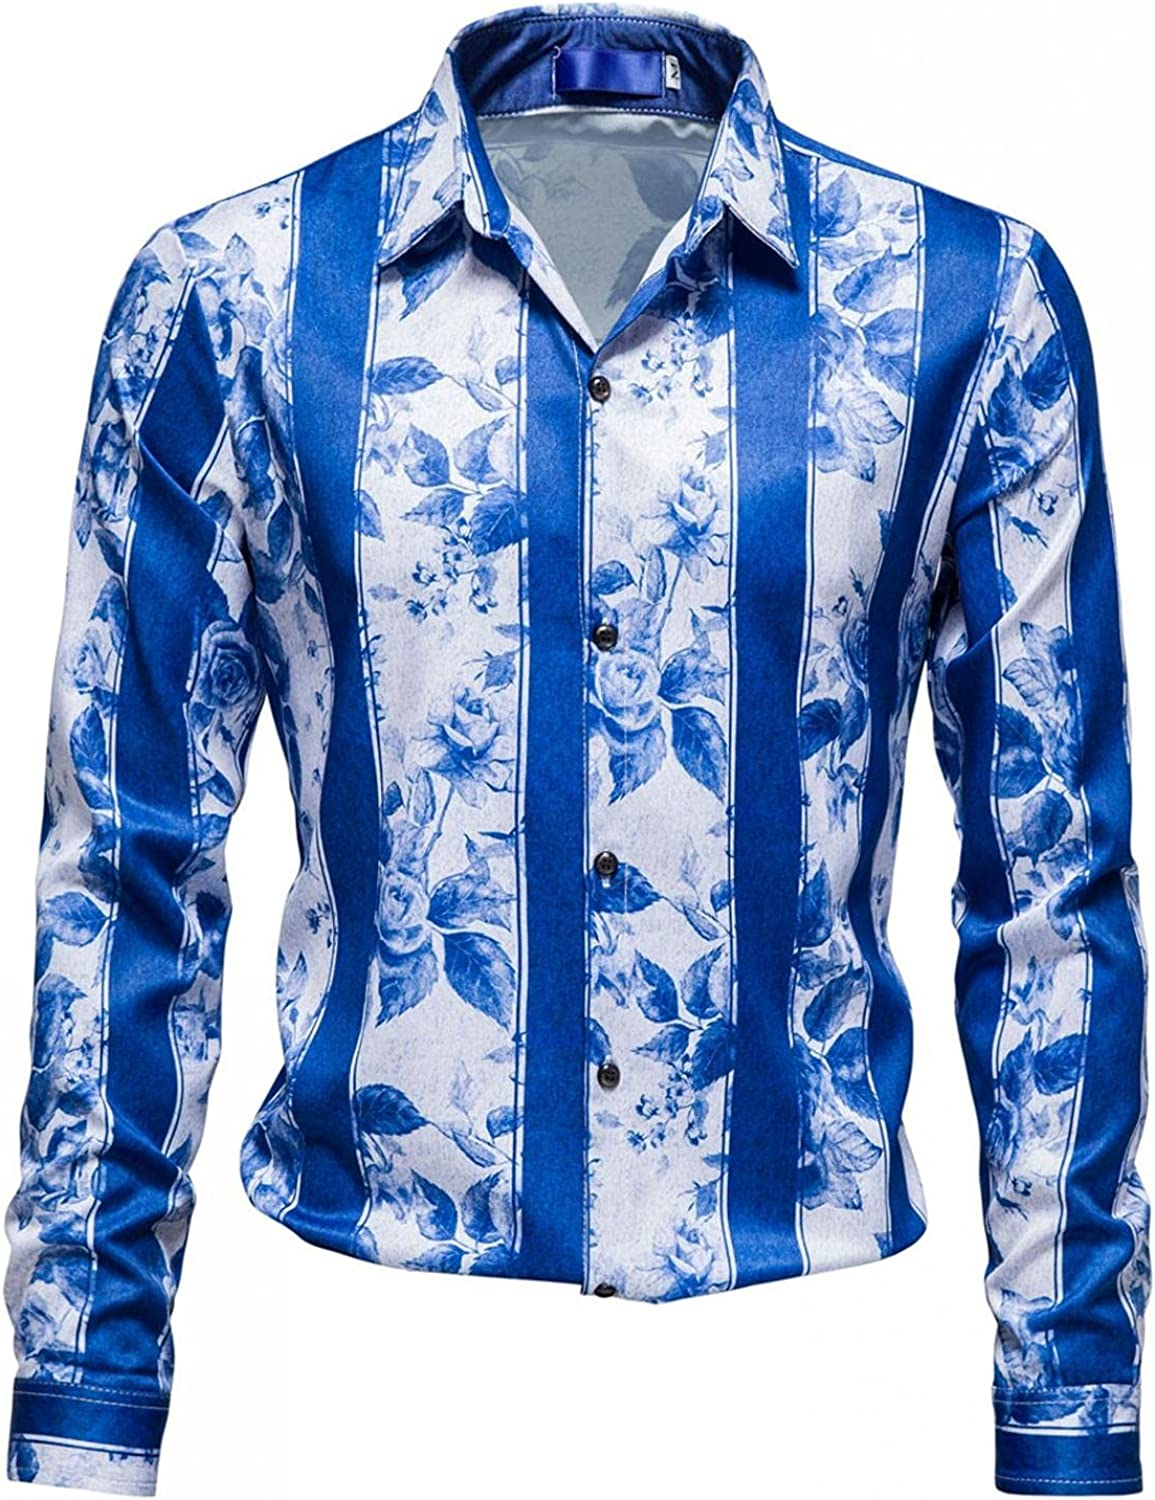 PHSHY Mens Floral Printed Shirts Business Office Work Dress Shirts Casual Long Sleeve Button Down Beach Tops Blouses